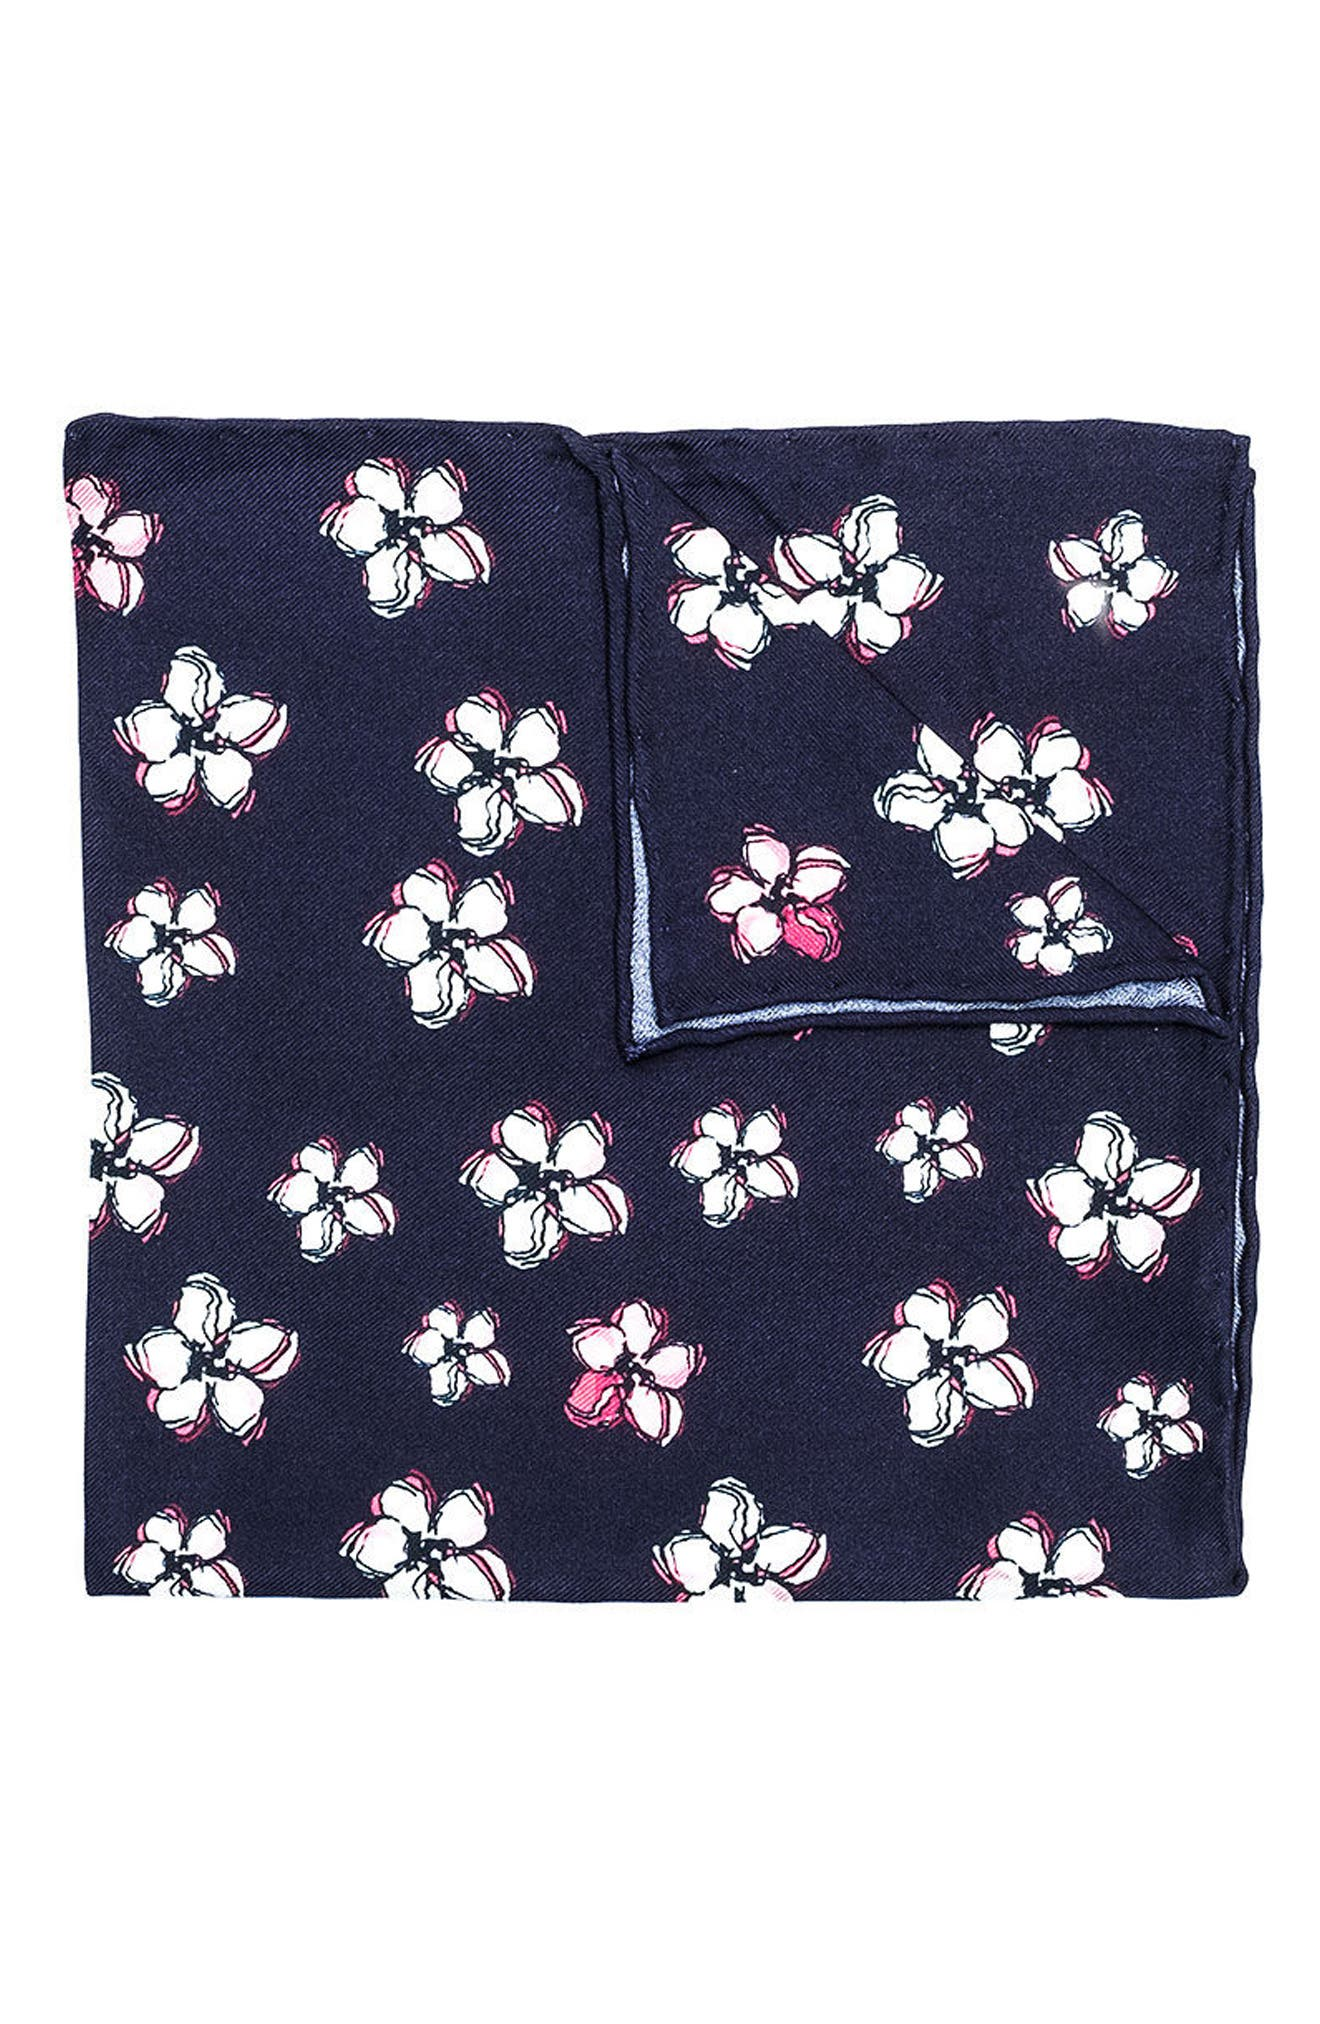 hook + ALBERT Lanai Floral Silk Pocket Square